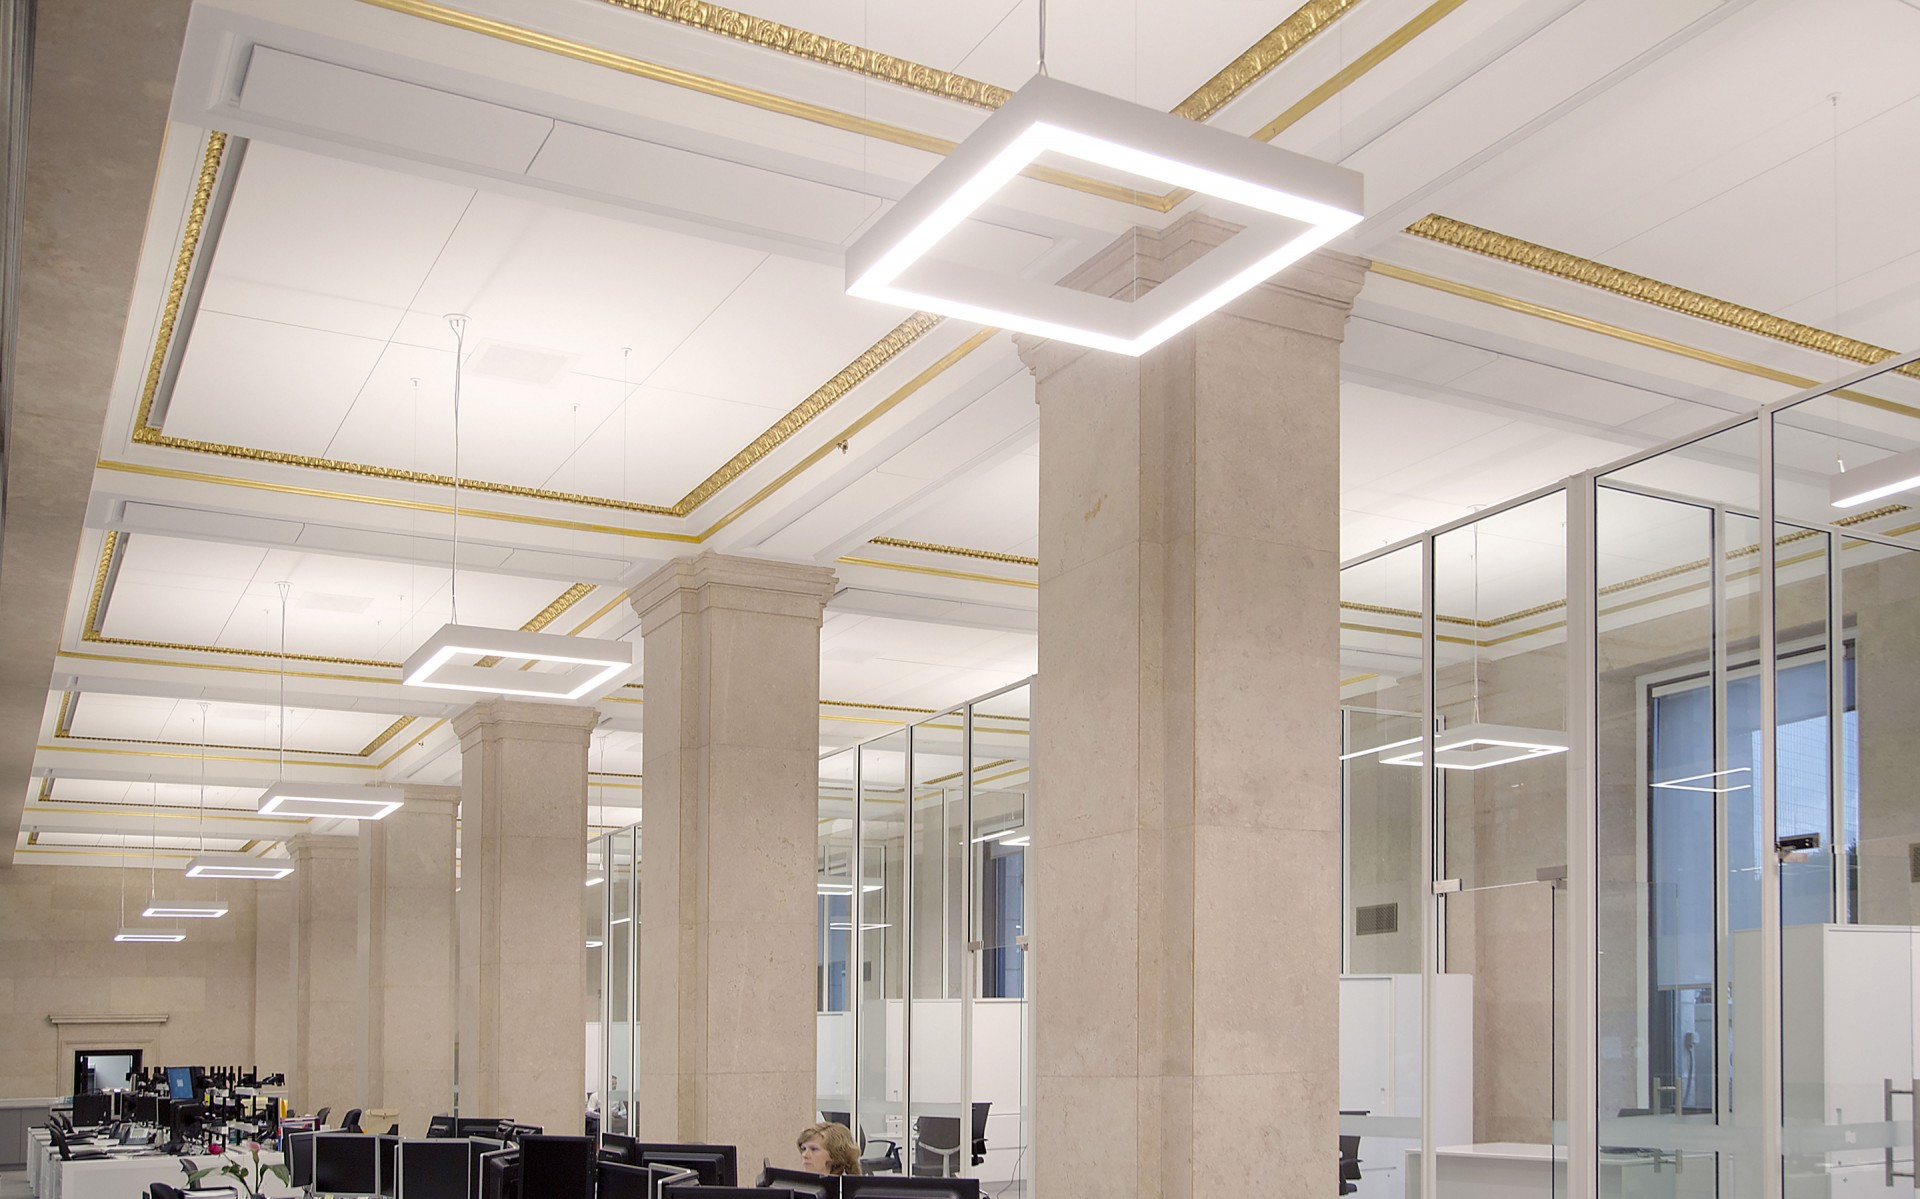 Lumenlines in square configurations with lit corners provide 3500k direct lighting and a softer 3000k indirect light to accentuate the gold leaf of each ceiling molding.